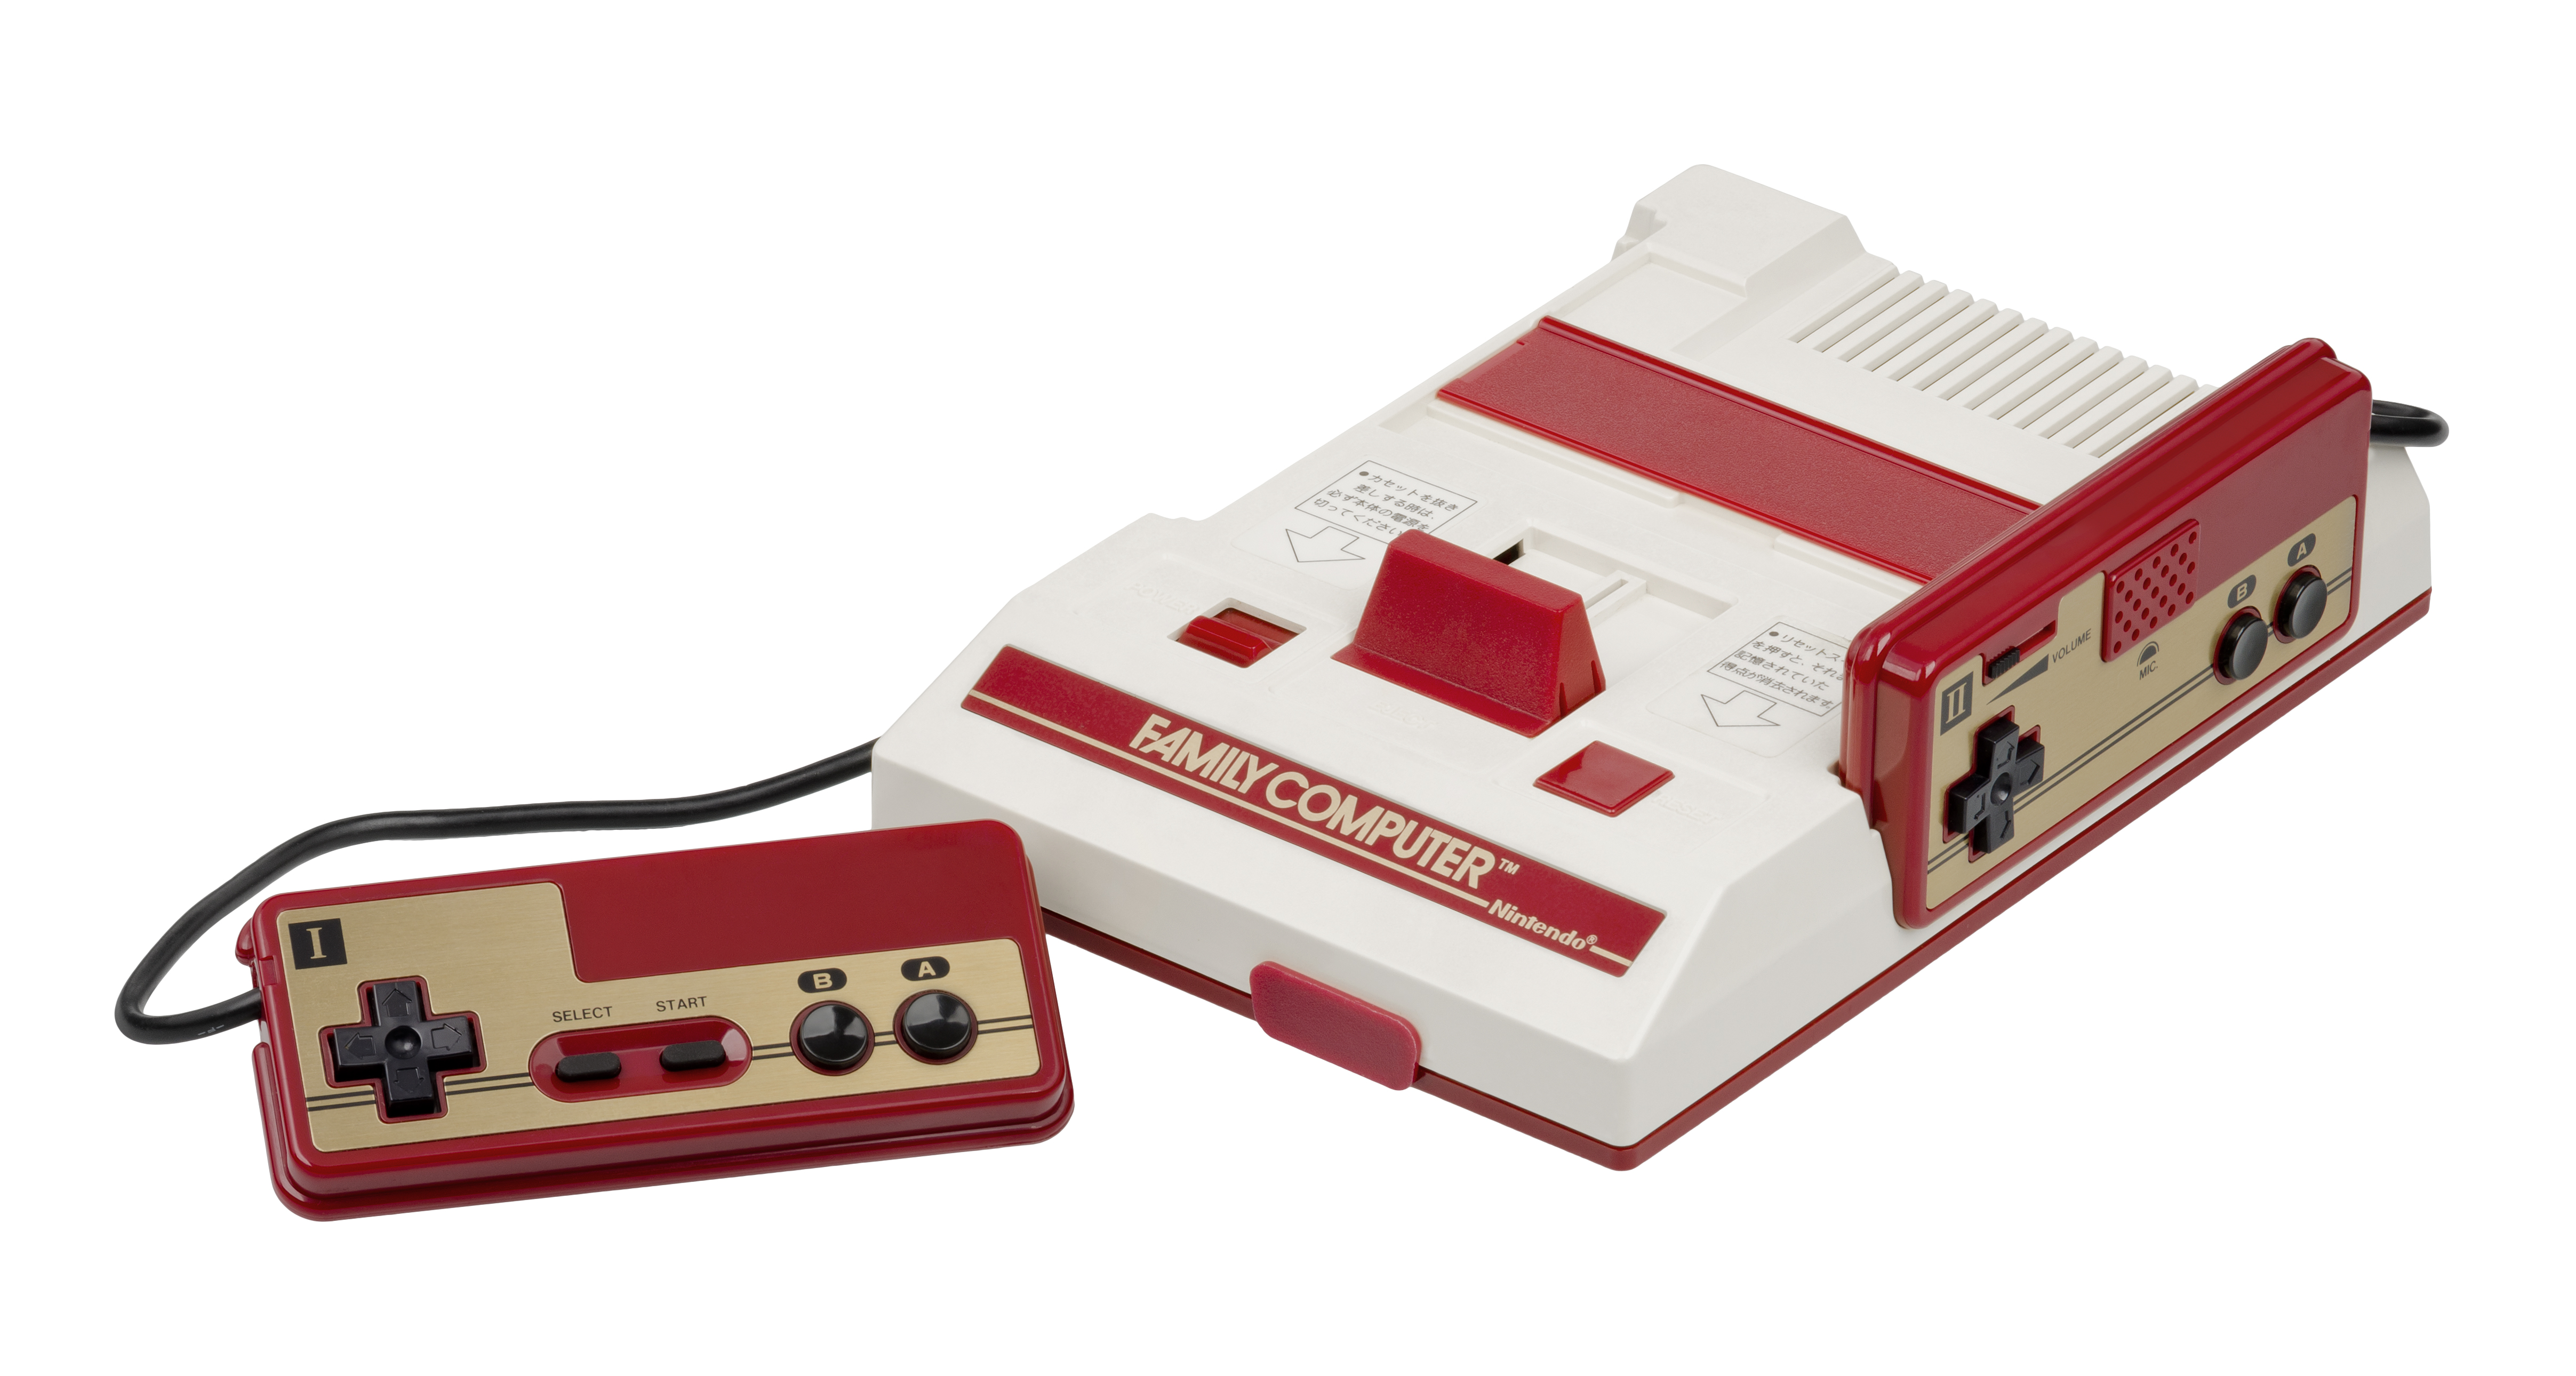 A Nintendo Famicom gaming console sits in a white space. It is a white console with slots on the left and right for controllers to rest when not in use. One controller is facing the screen and is connected to the Famicom by a cable.